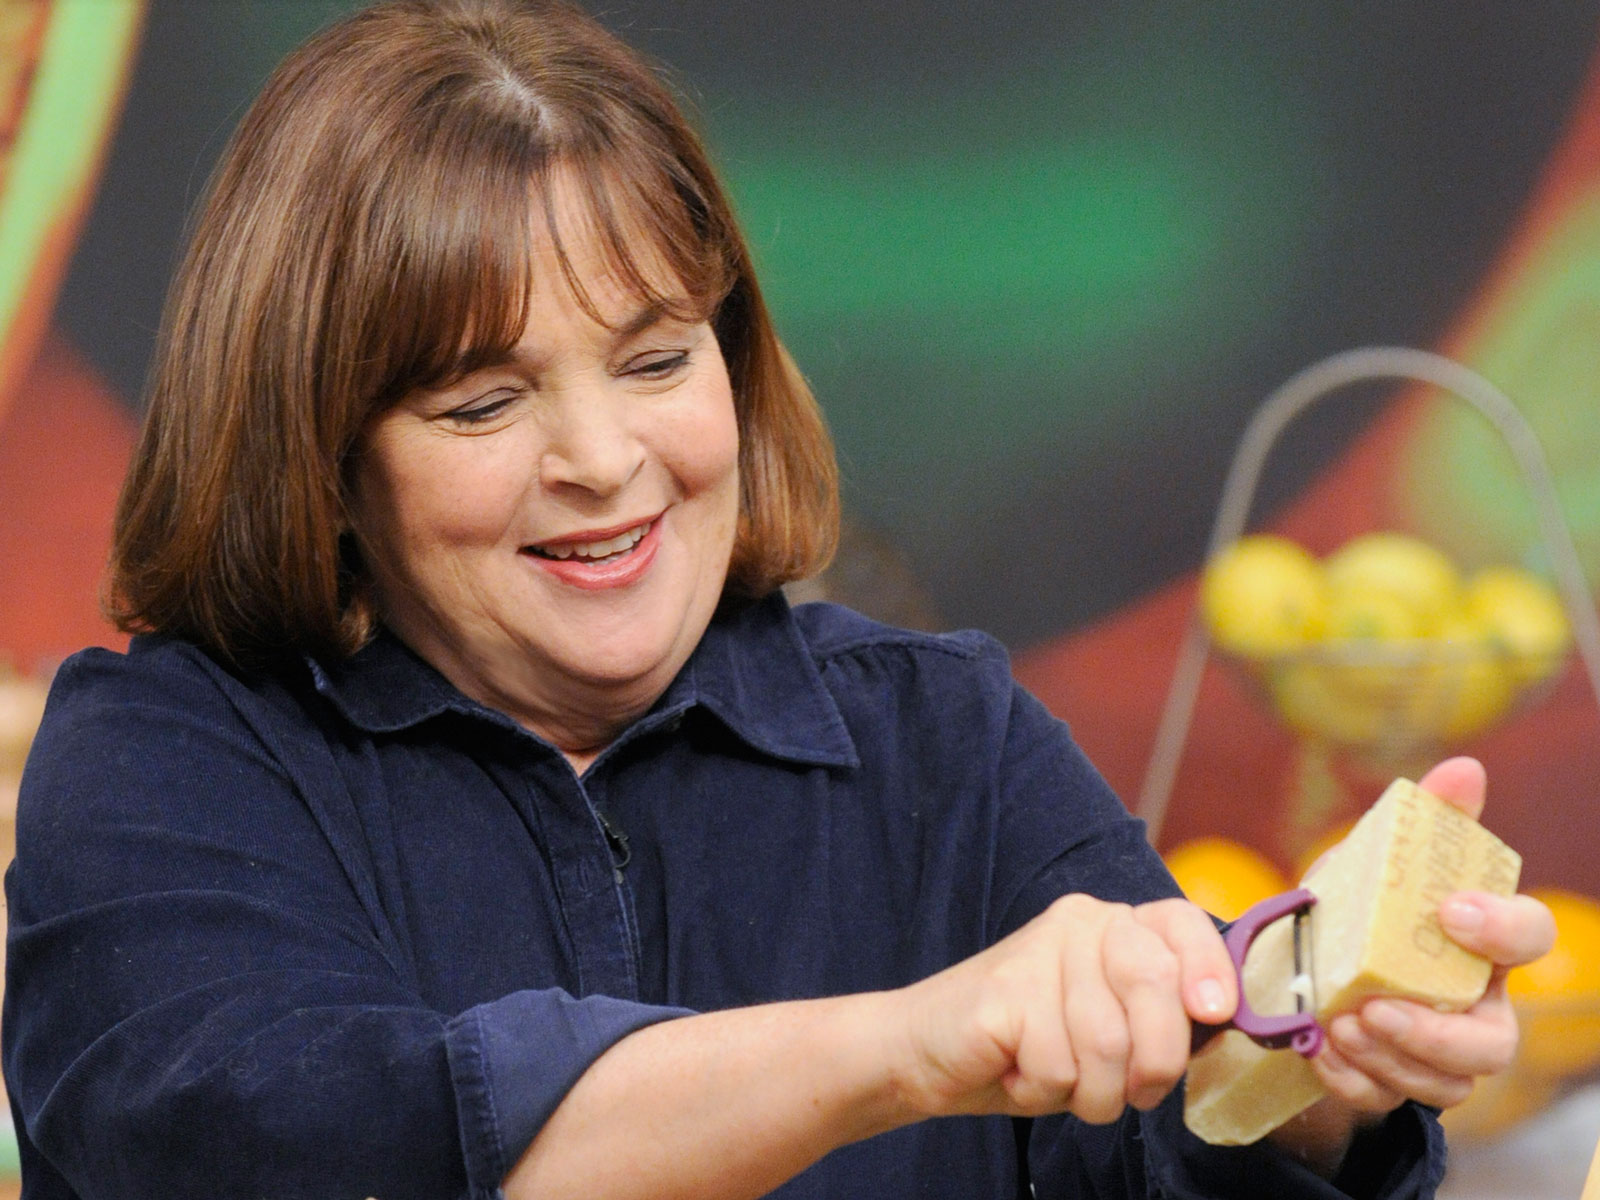 Ina Garten's Best Tips from 'Barefoot Contessa: Cook Like a Pro' (So Far!)